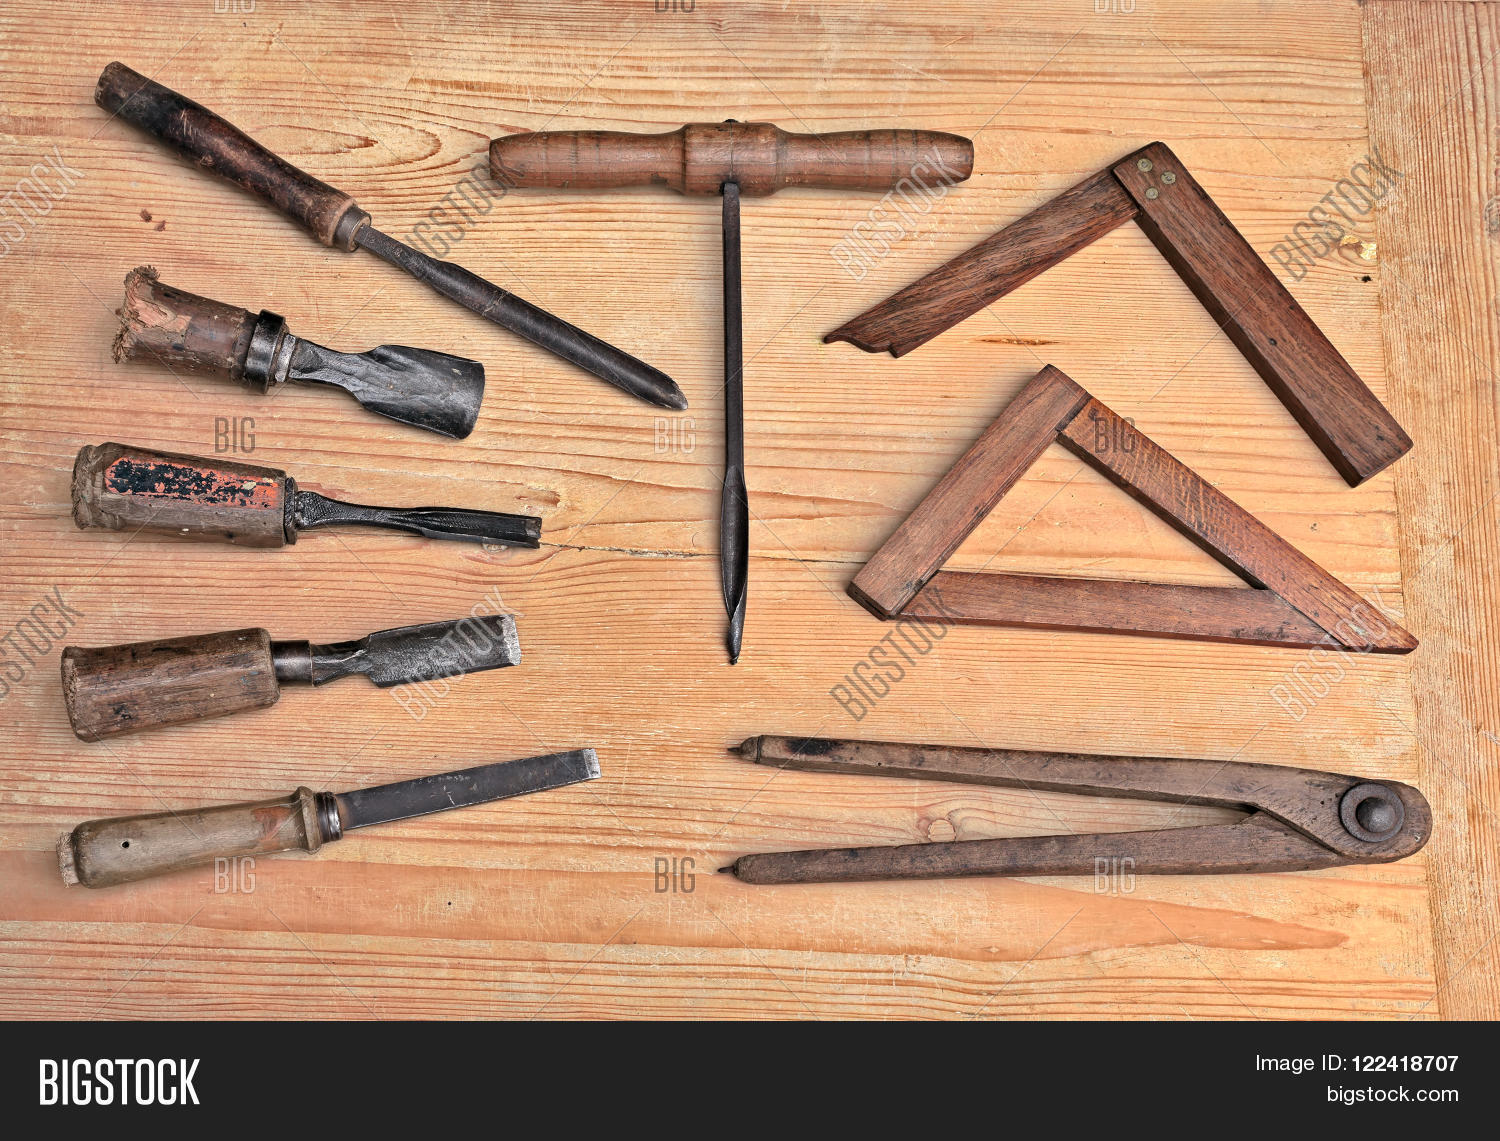 Vintage woodworking hand tools image photo bigstock for Travail du bois flotte